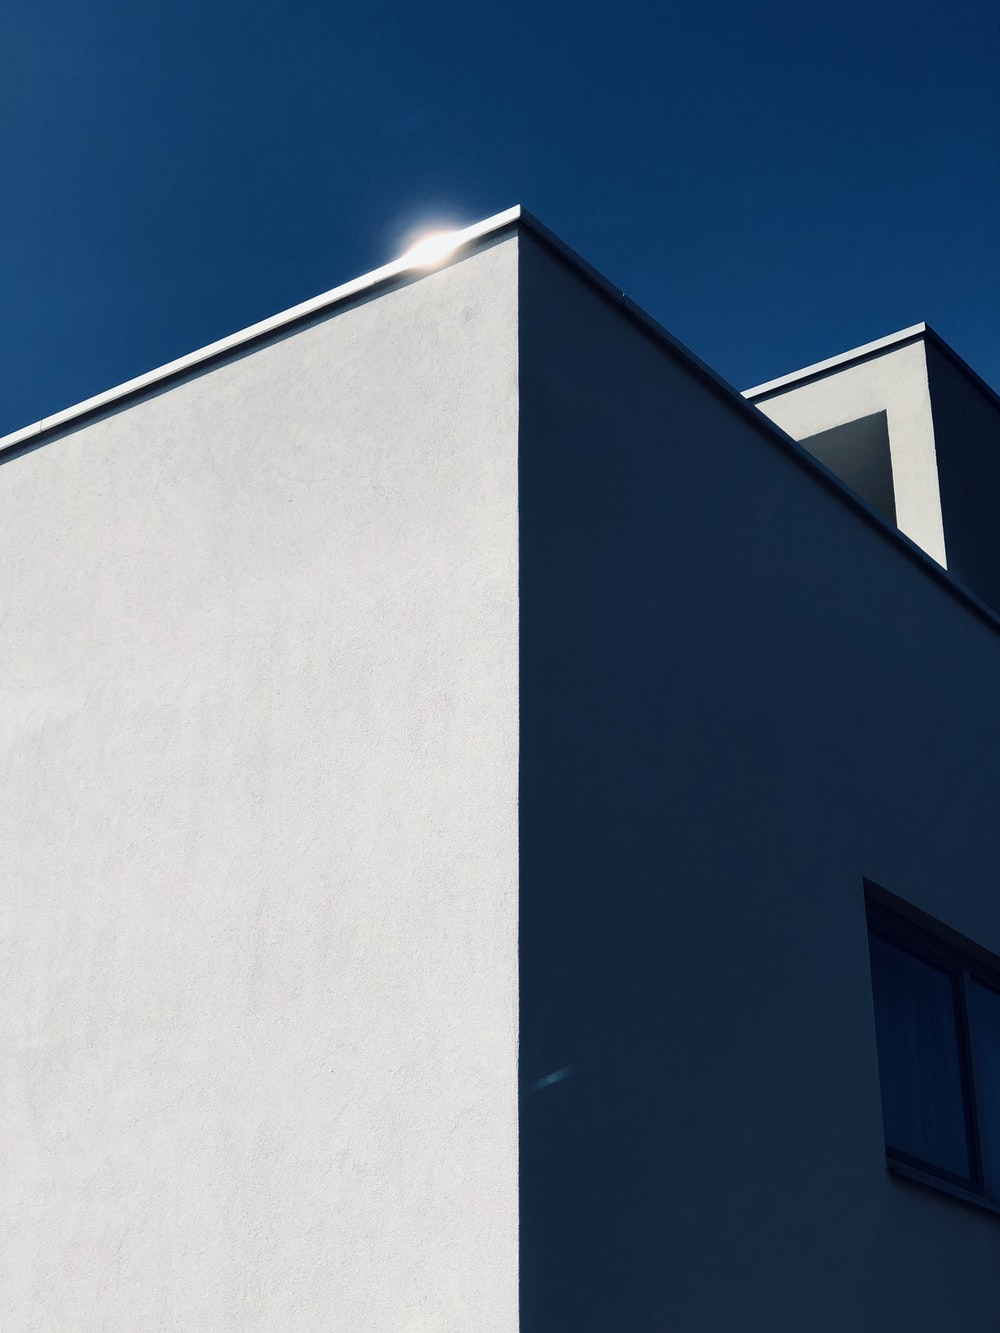 low-angle photography of concrete building under blue sky